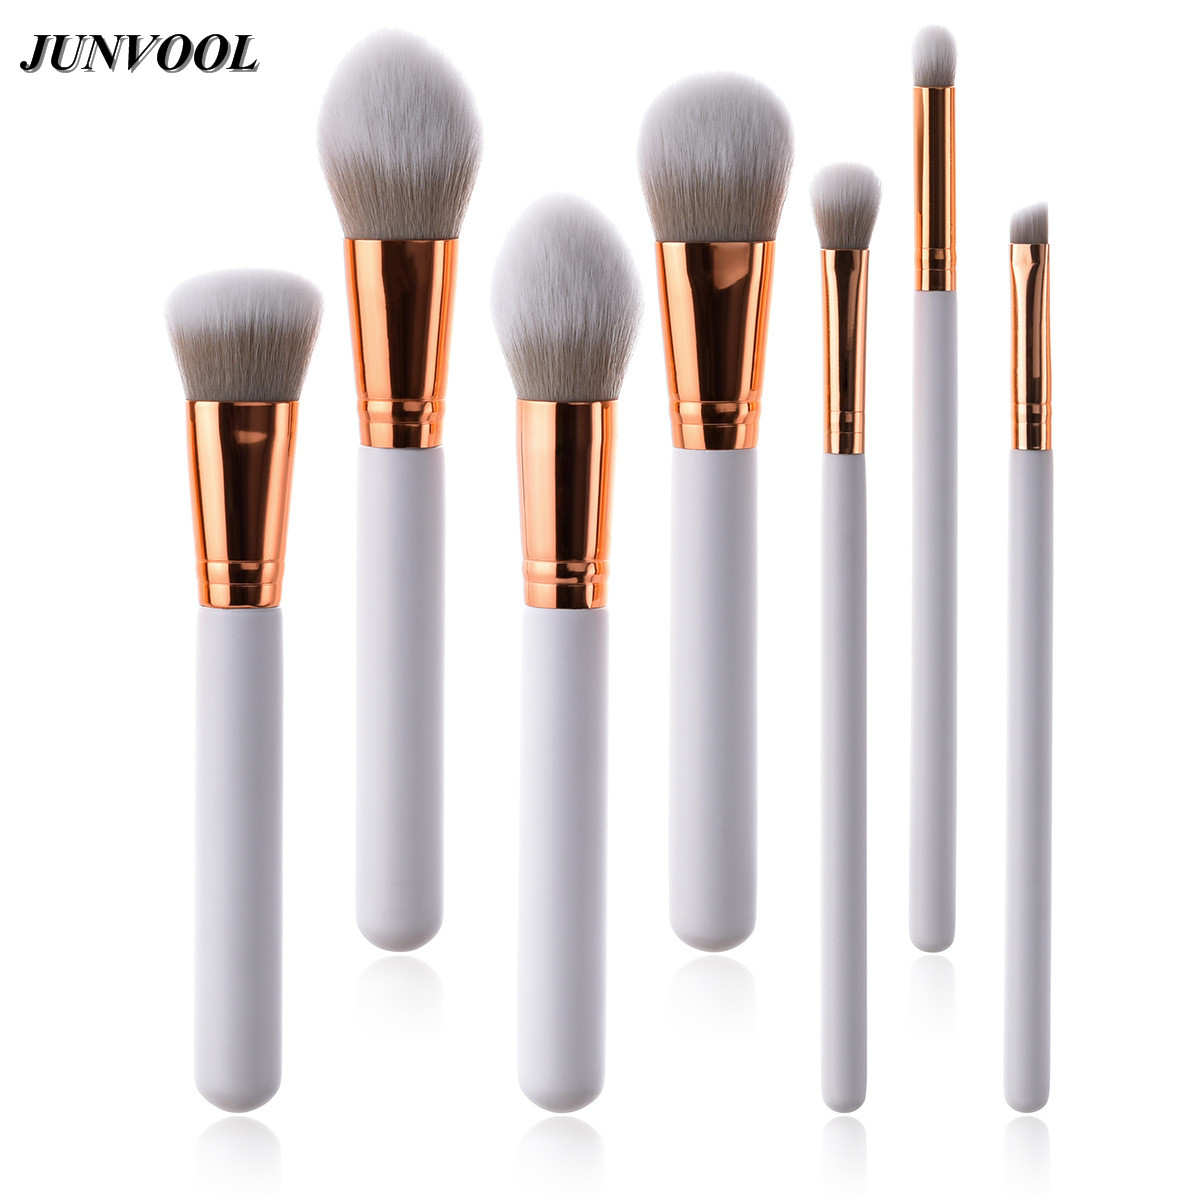 7pcs Makeup Brushes White Gold Pincel Maquiagem Contour Base Foundation Powder Blush Cosmetics Make Up Brushes Wood Handle 12pcs makeup brushes professional make up brush set pincel maquiagem for beauty blush contour foundation cosmetics